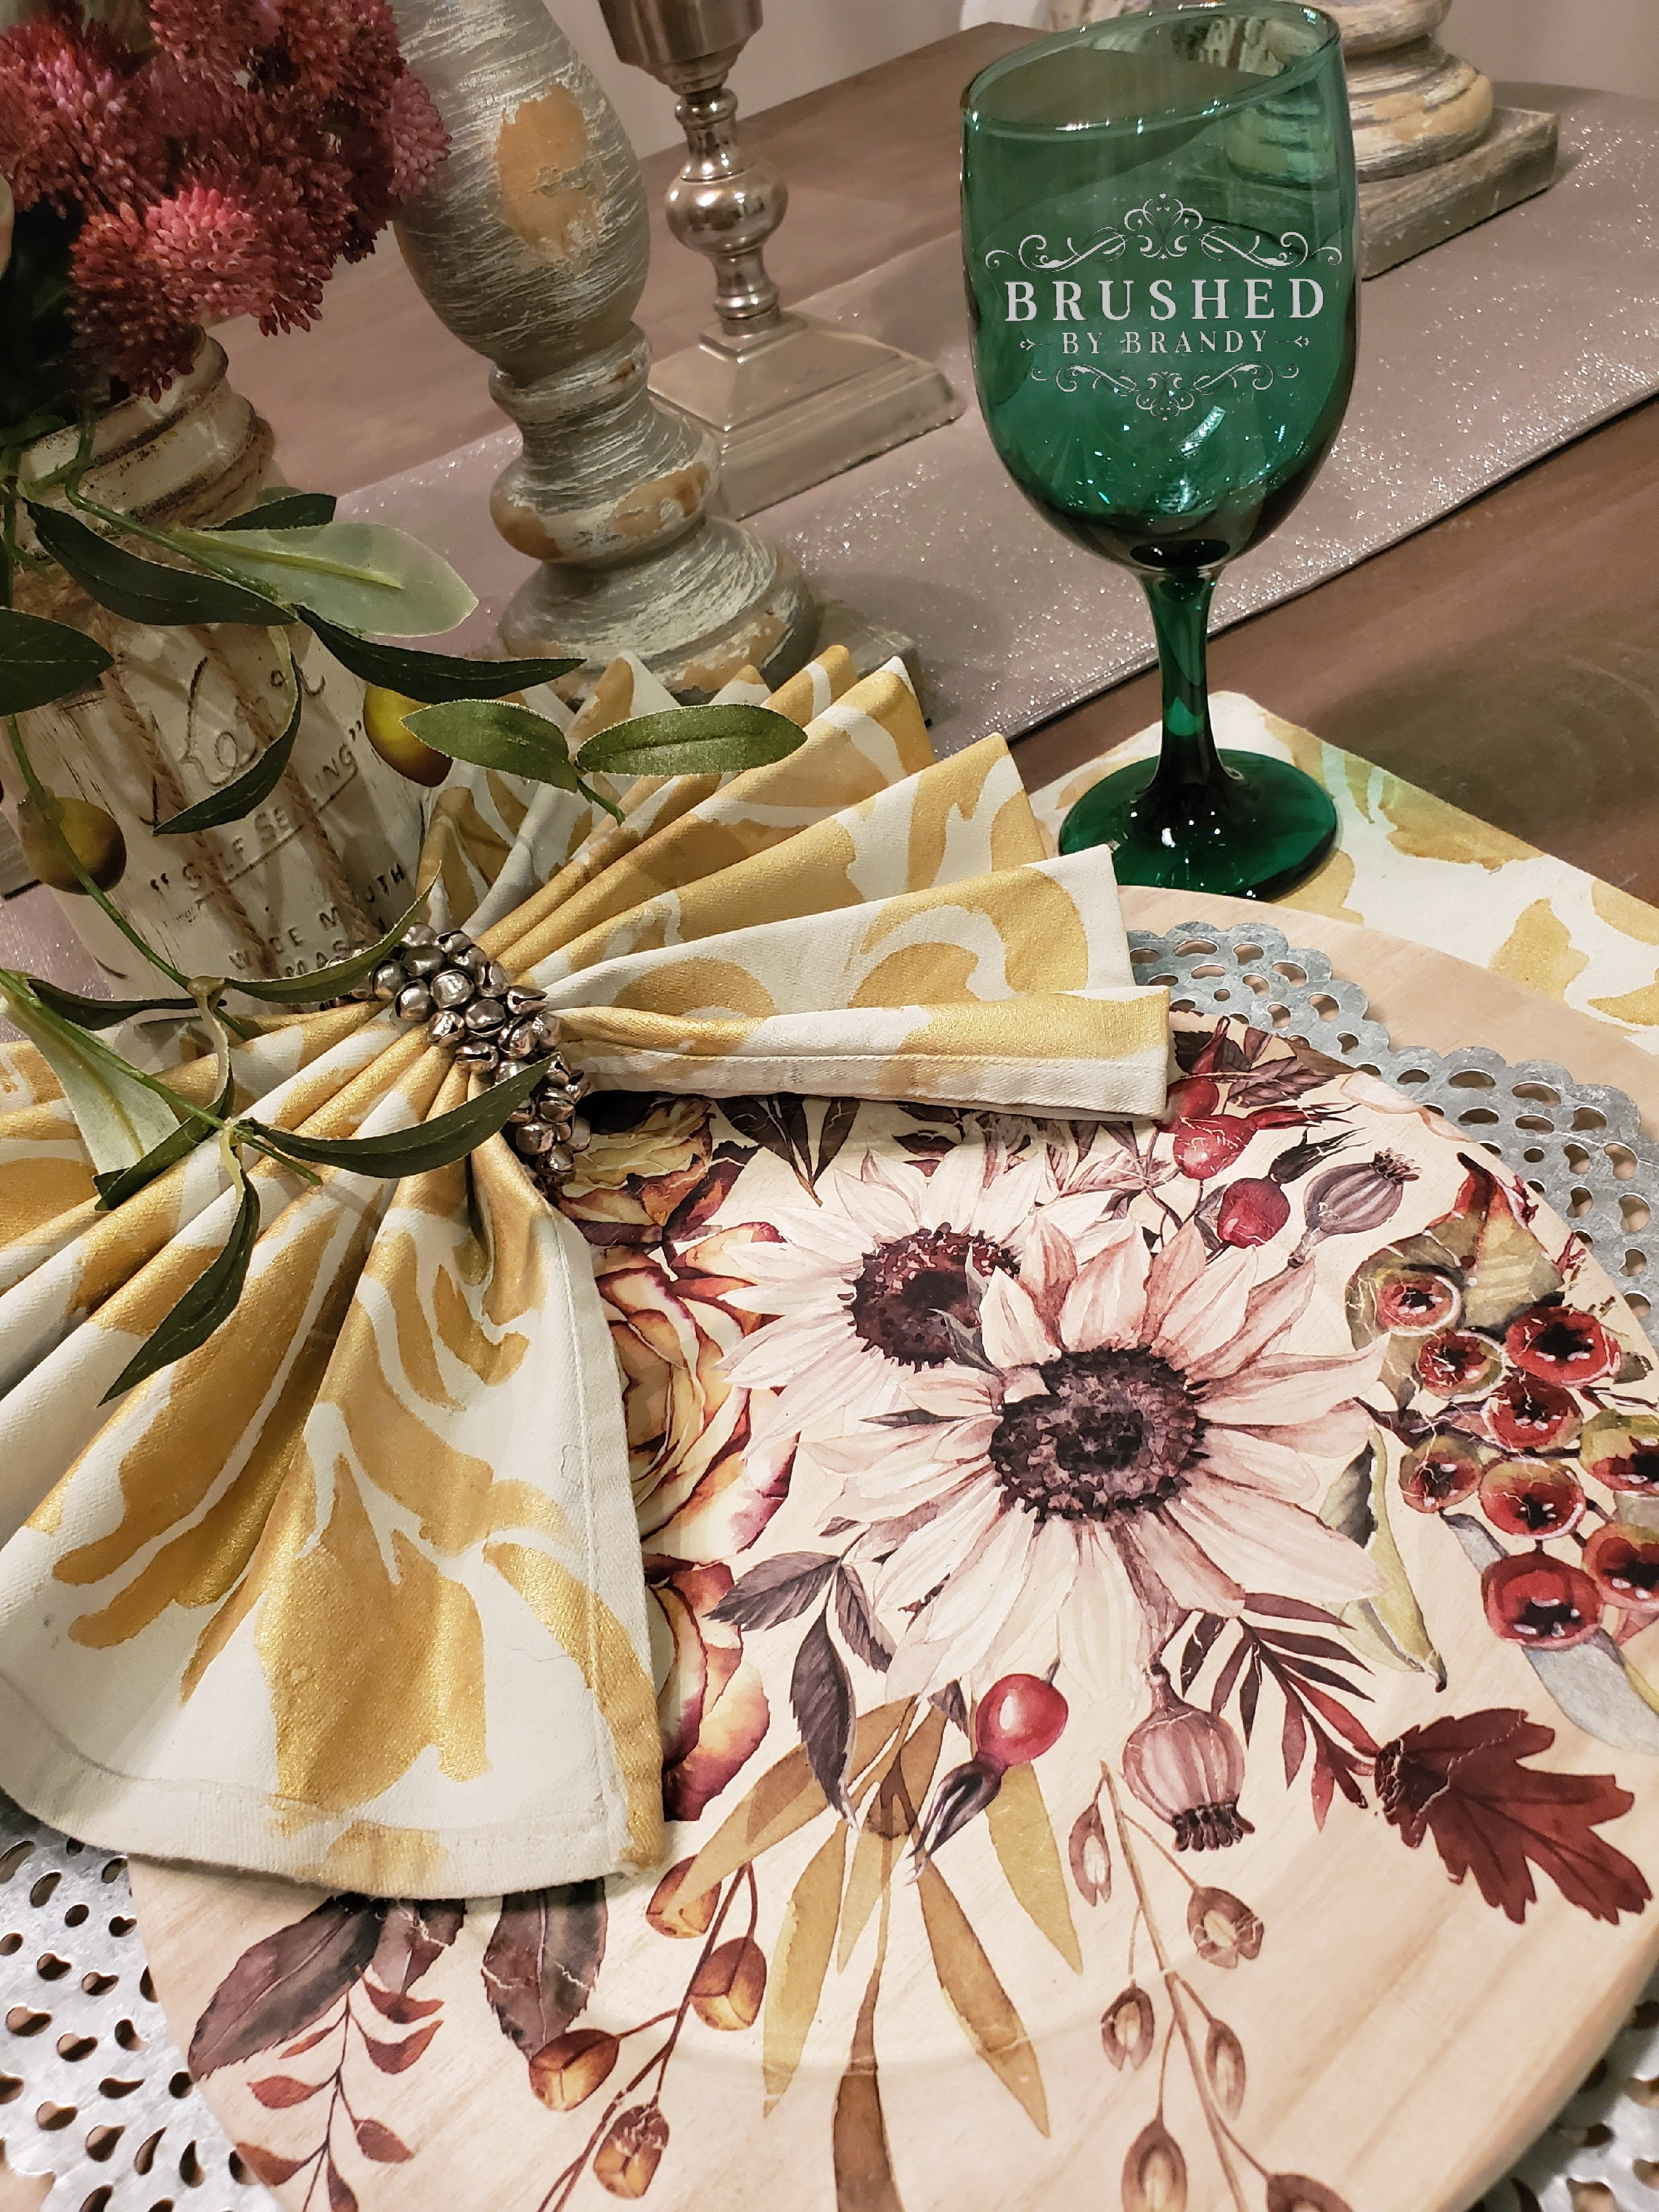 Finished Metallic Painted Fabrics and Wooden Charger for Custom Holiday Table Decor